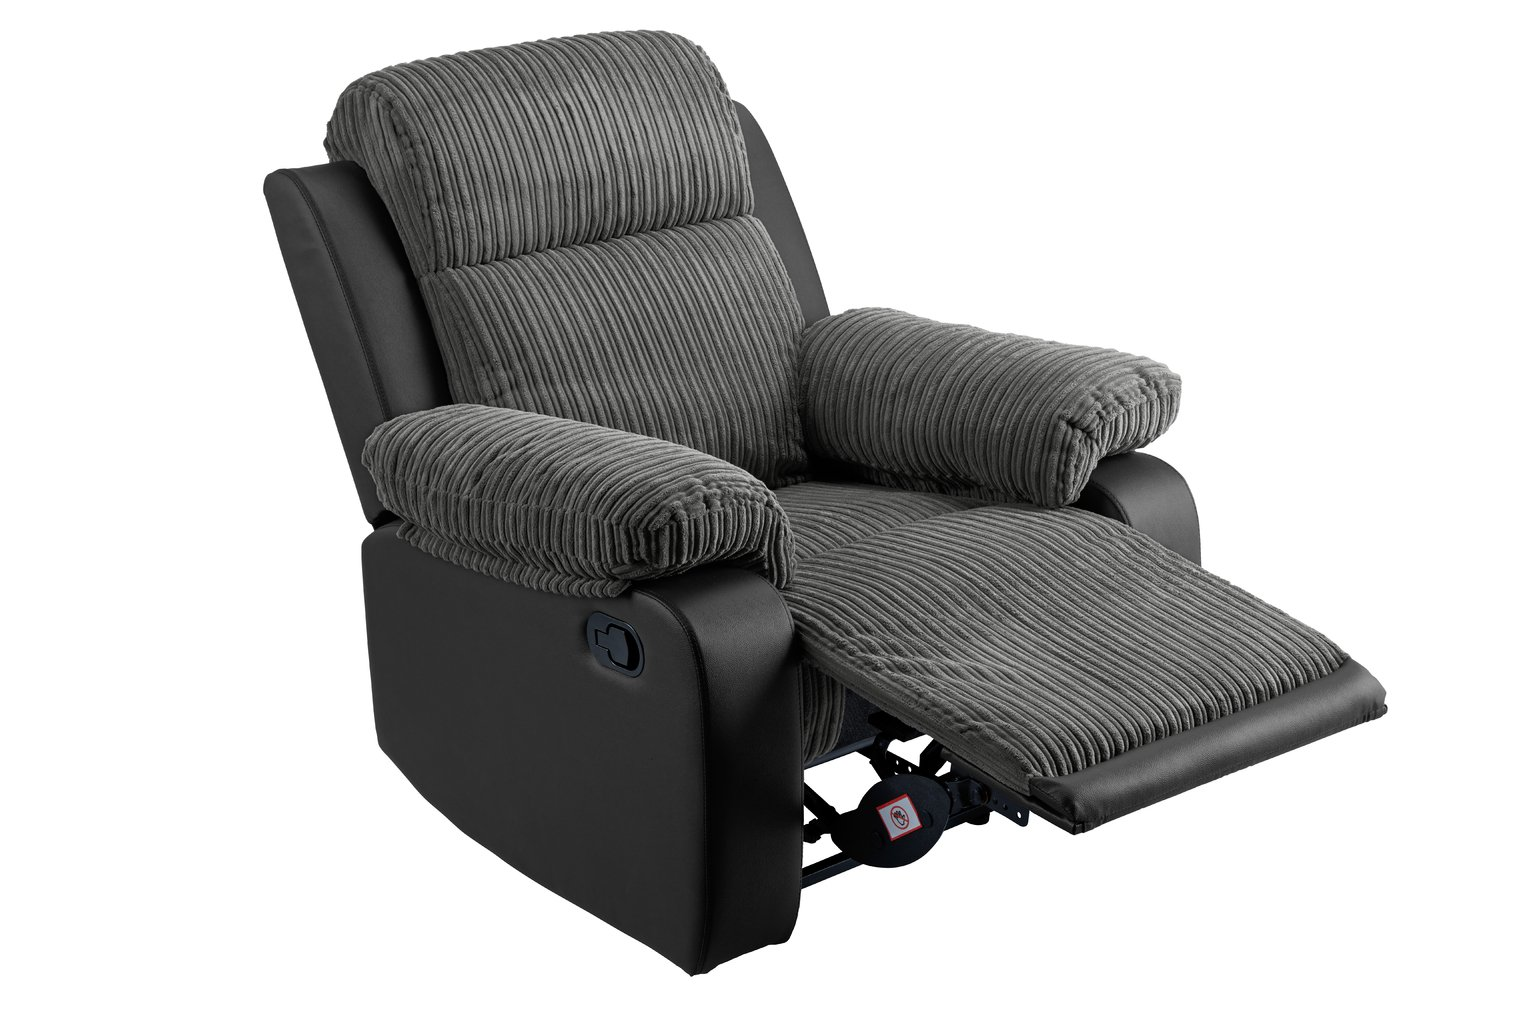 Argos Home Bradley Fabric Manual Recliner Chair - Charcoal